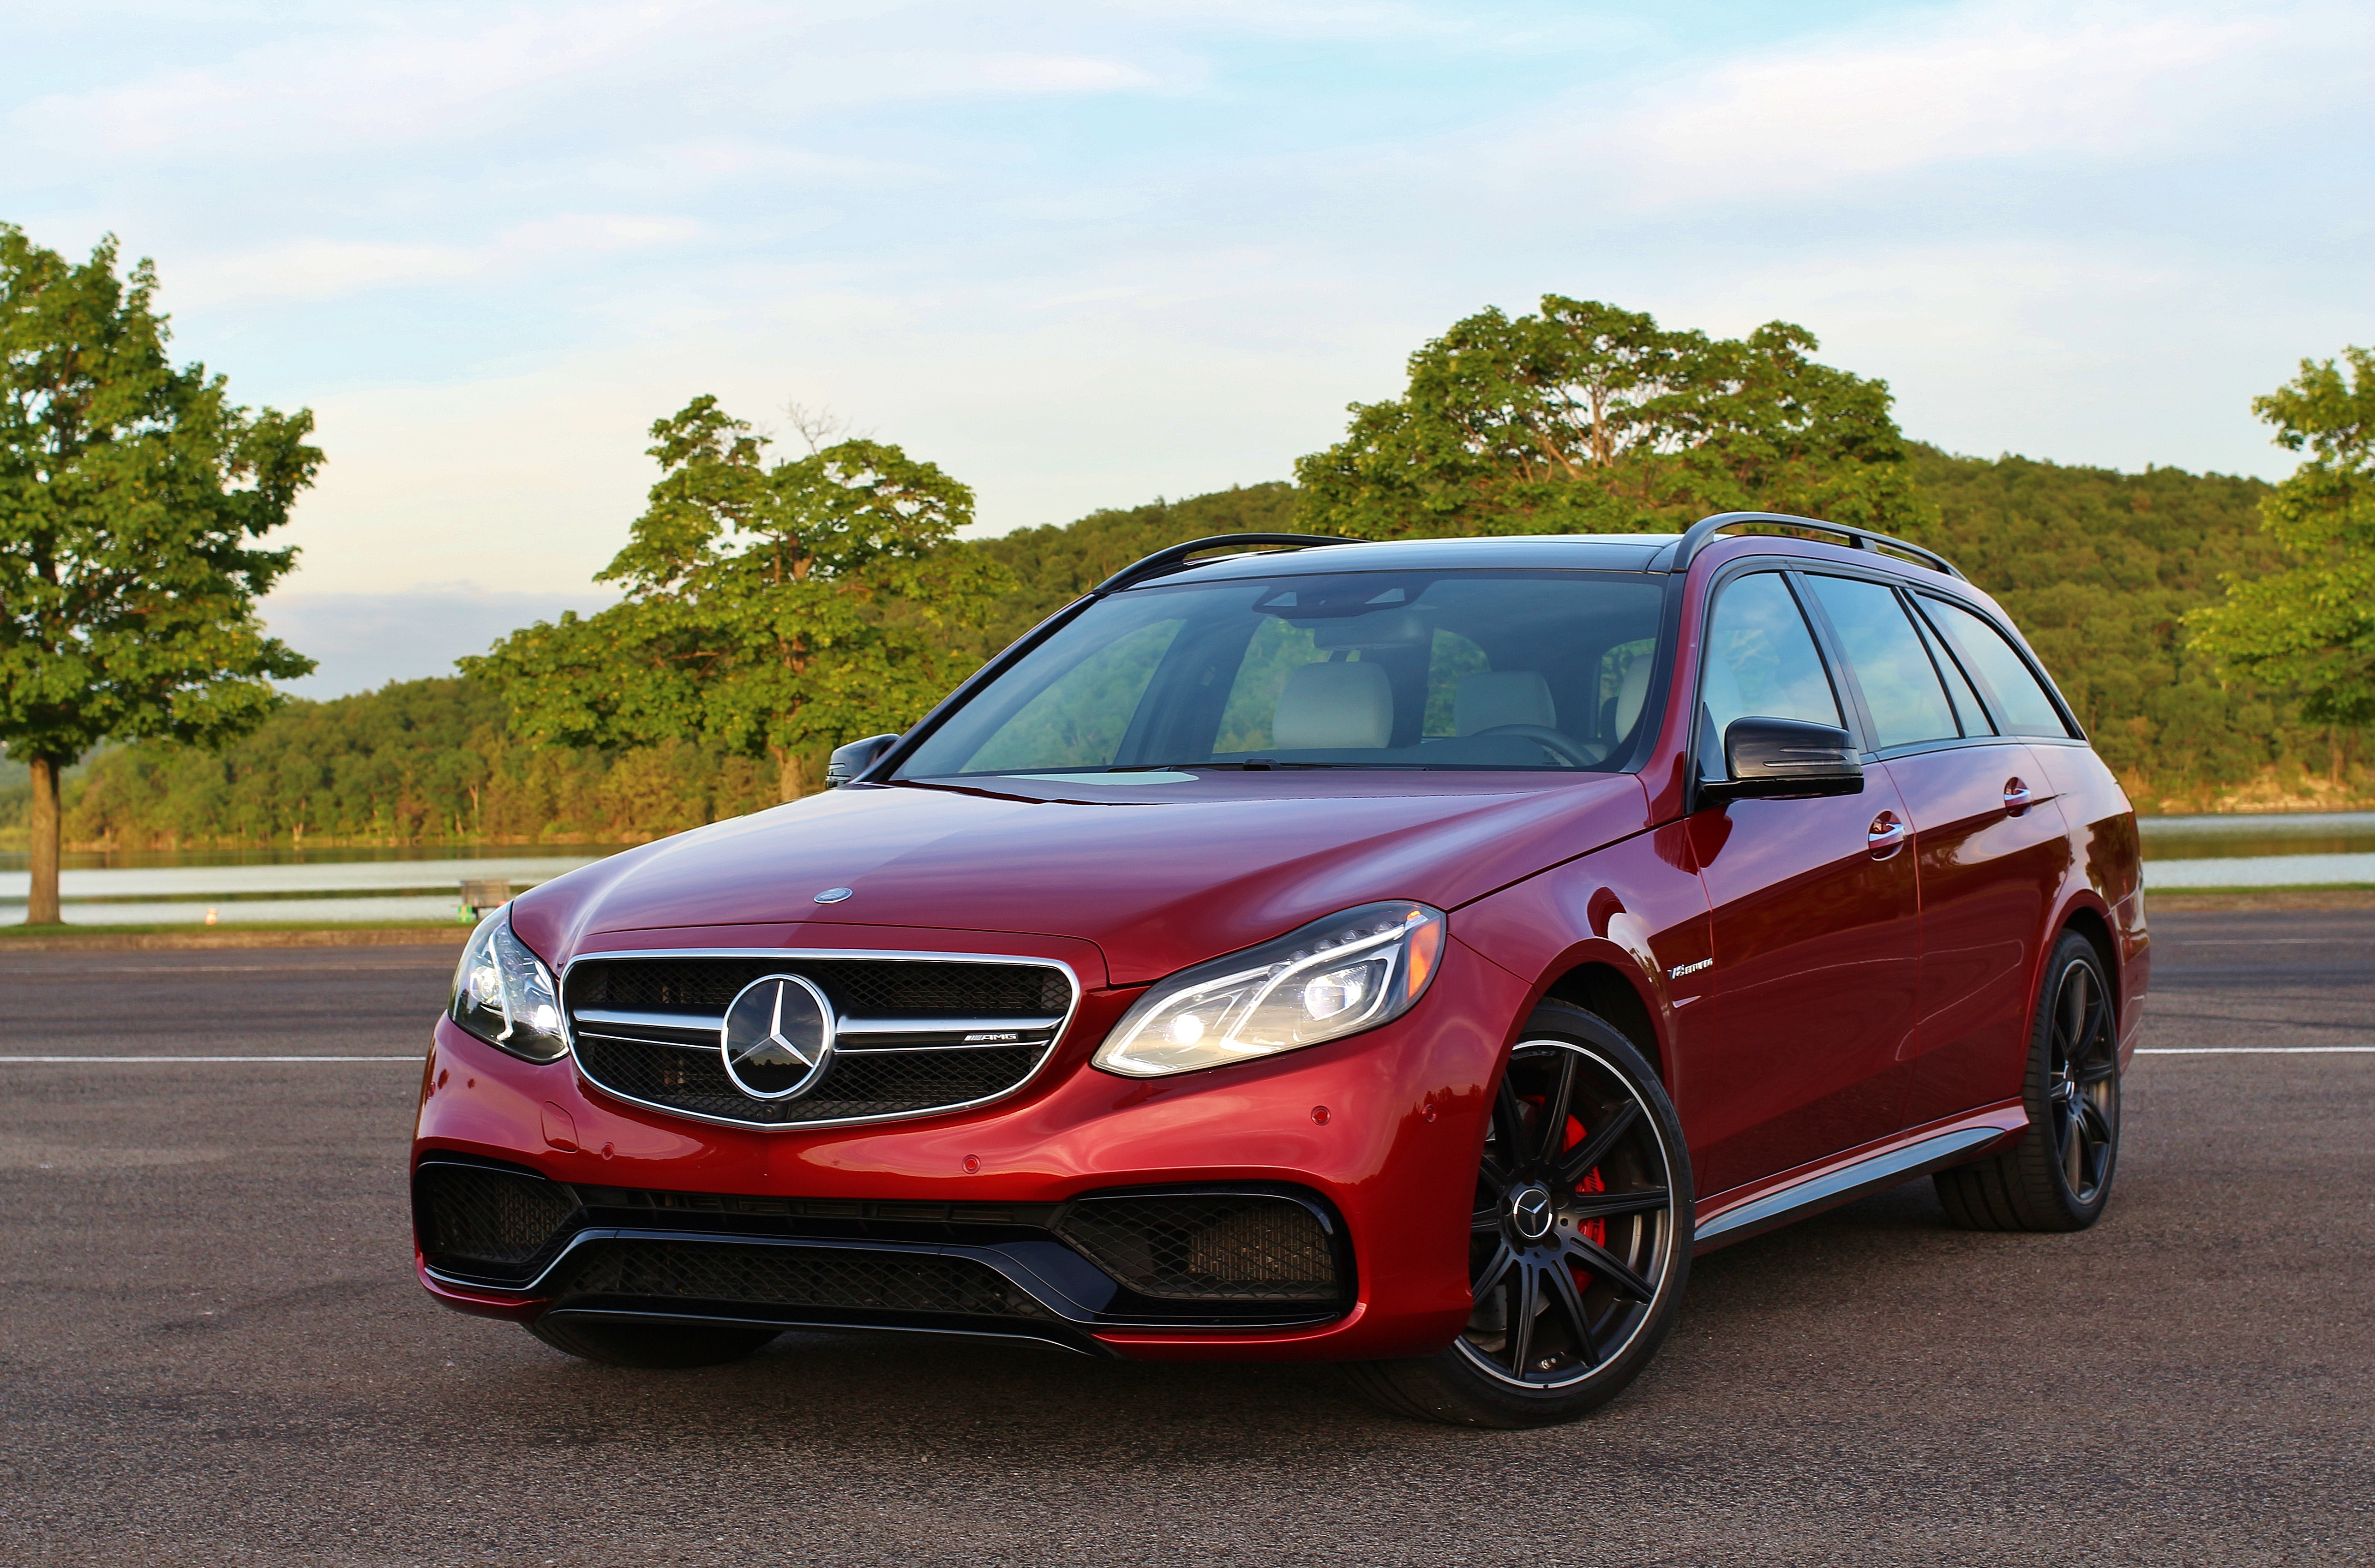 Uncommon mercedes benz e63 s amg wagon limited slip blog for Mercedes benz e63 amg wagon